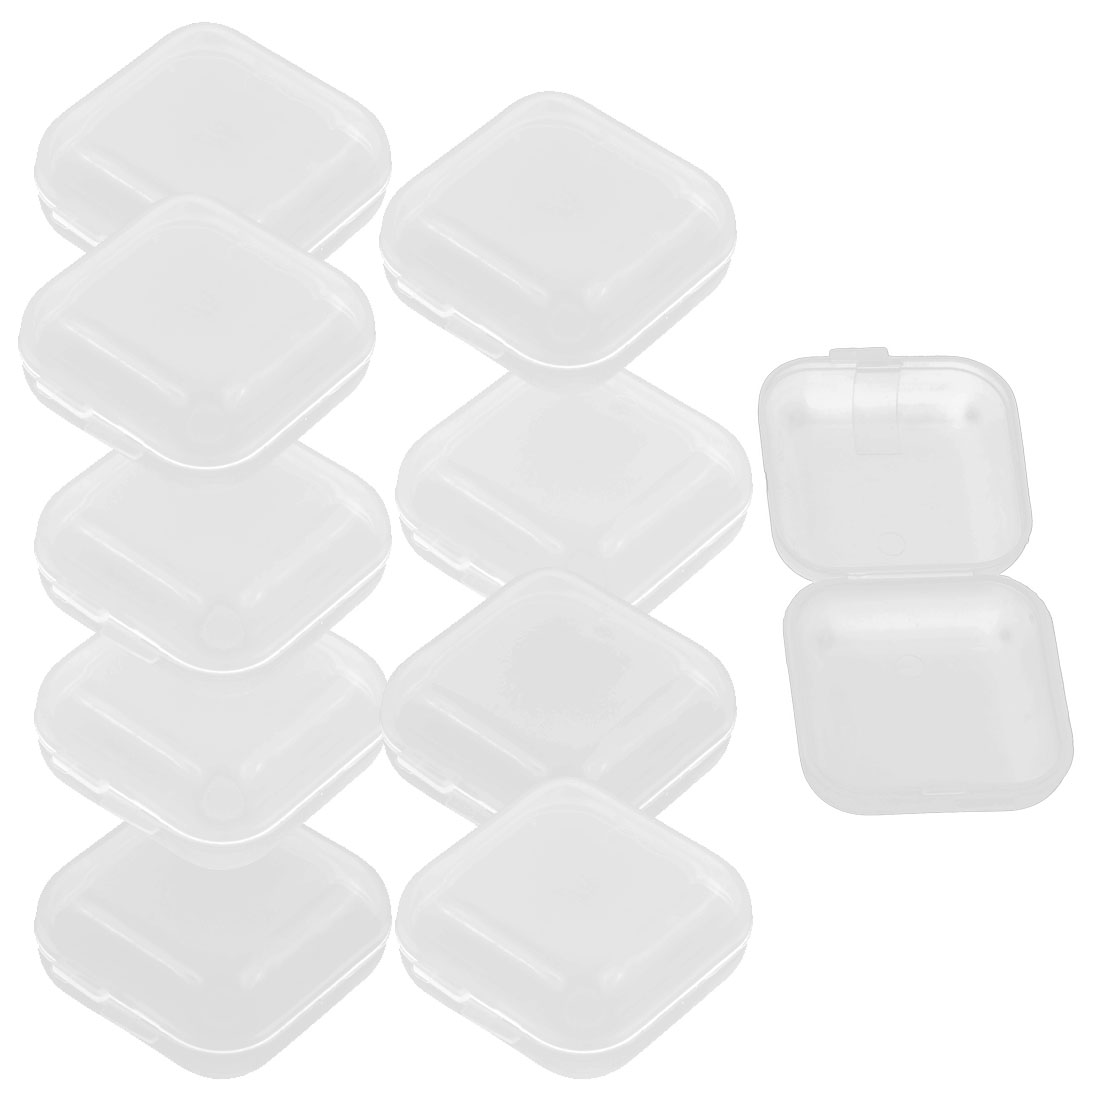 Mobile Phone SD SIM Compact Flash Cards Box Case Storage Container Clear 10 PCS